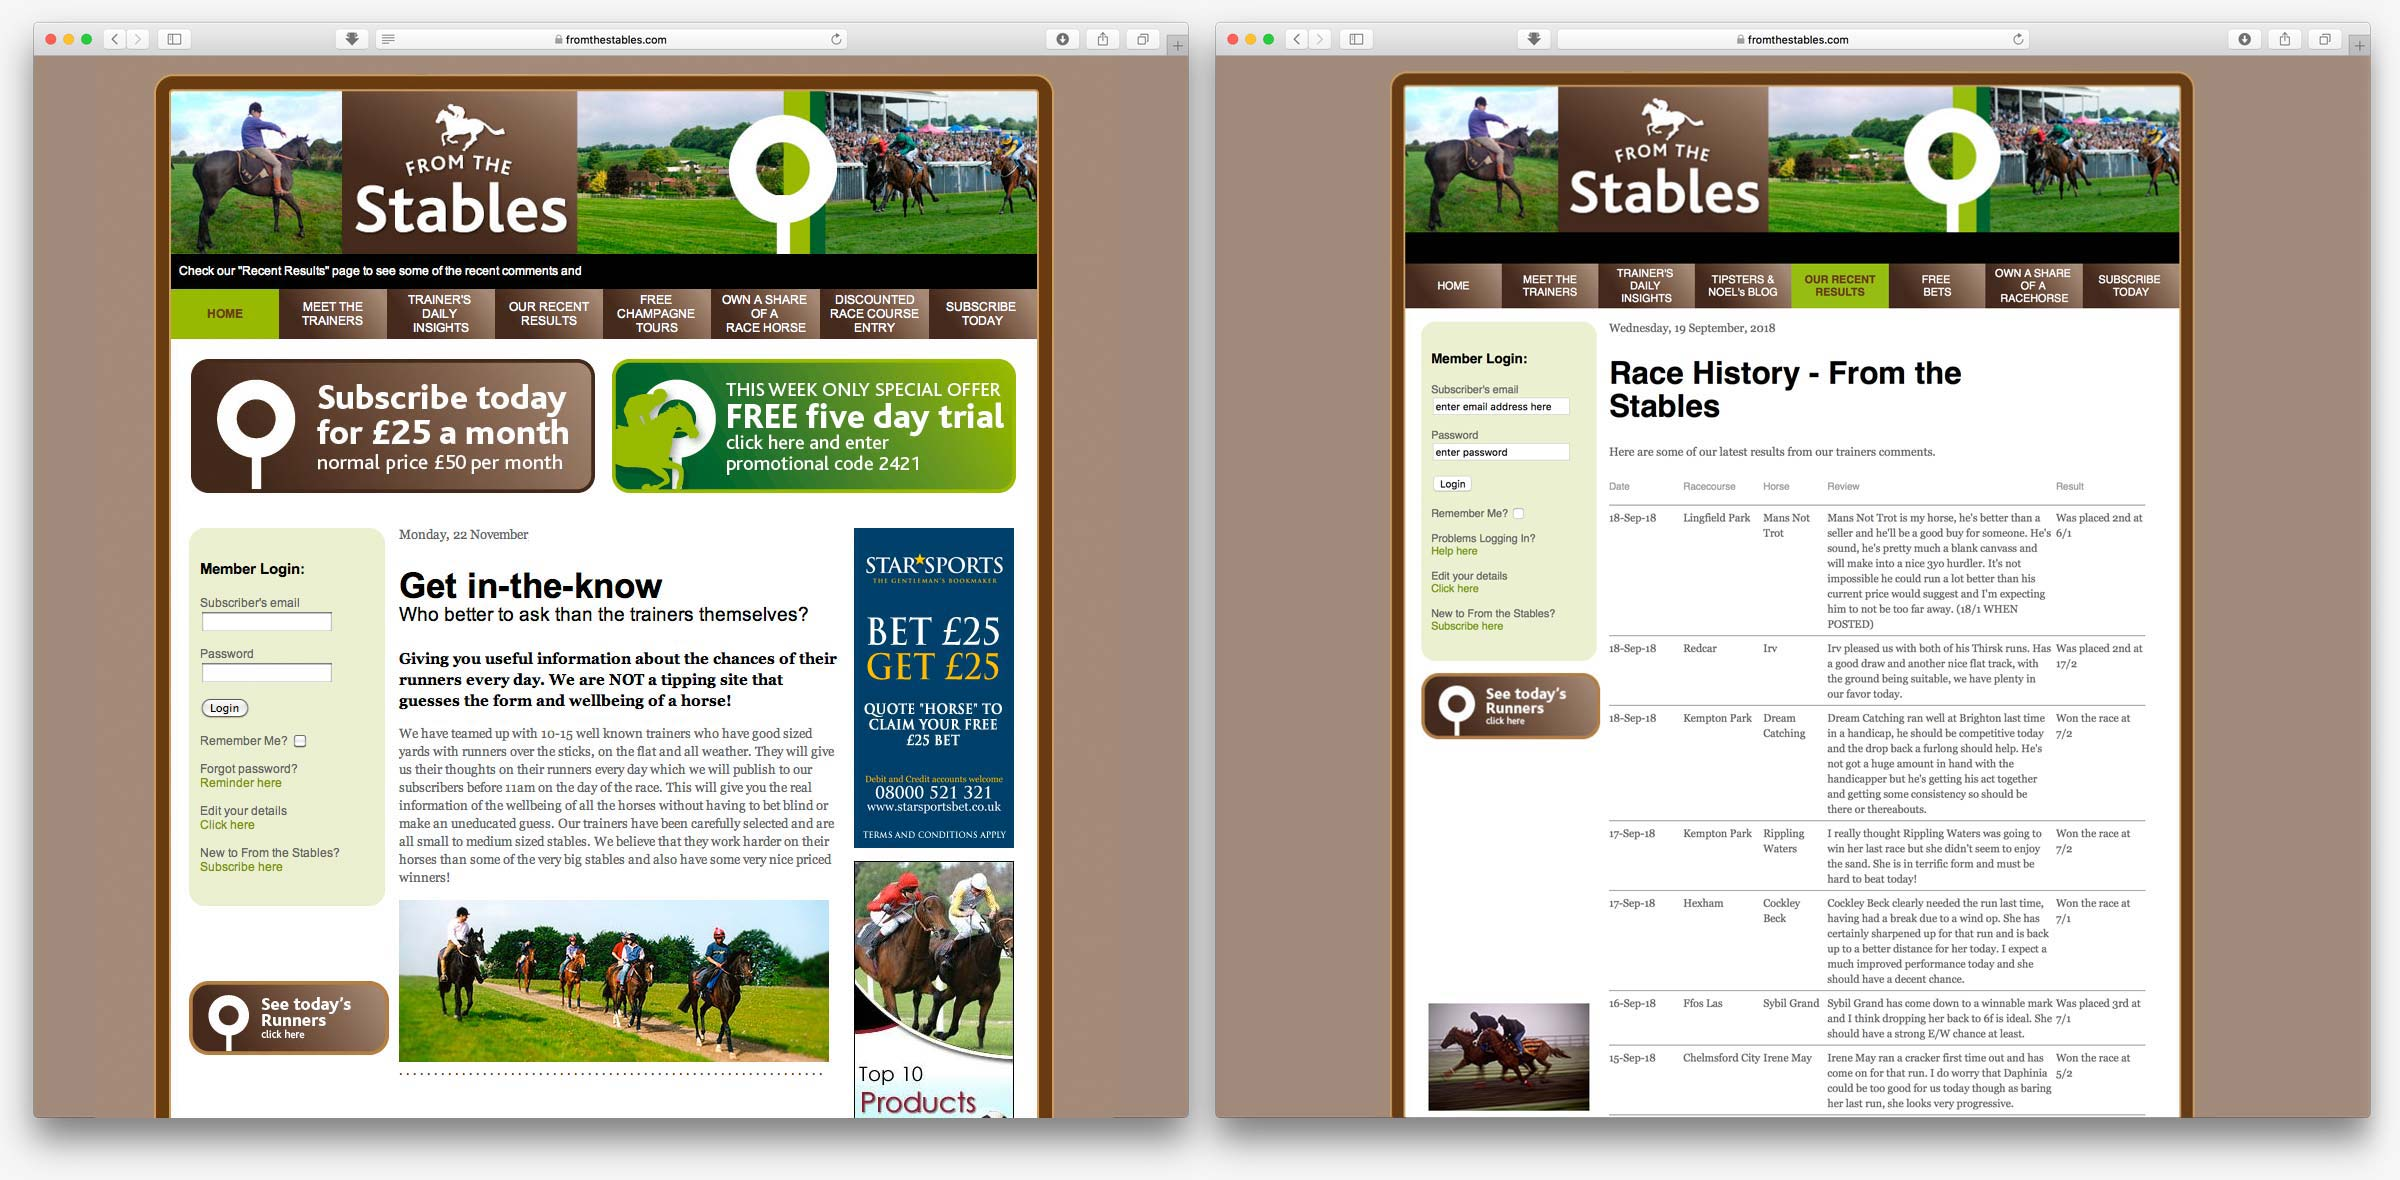 From the Stables website